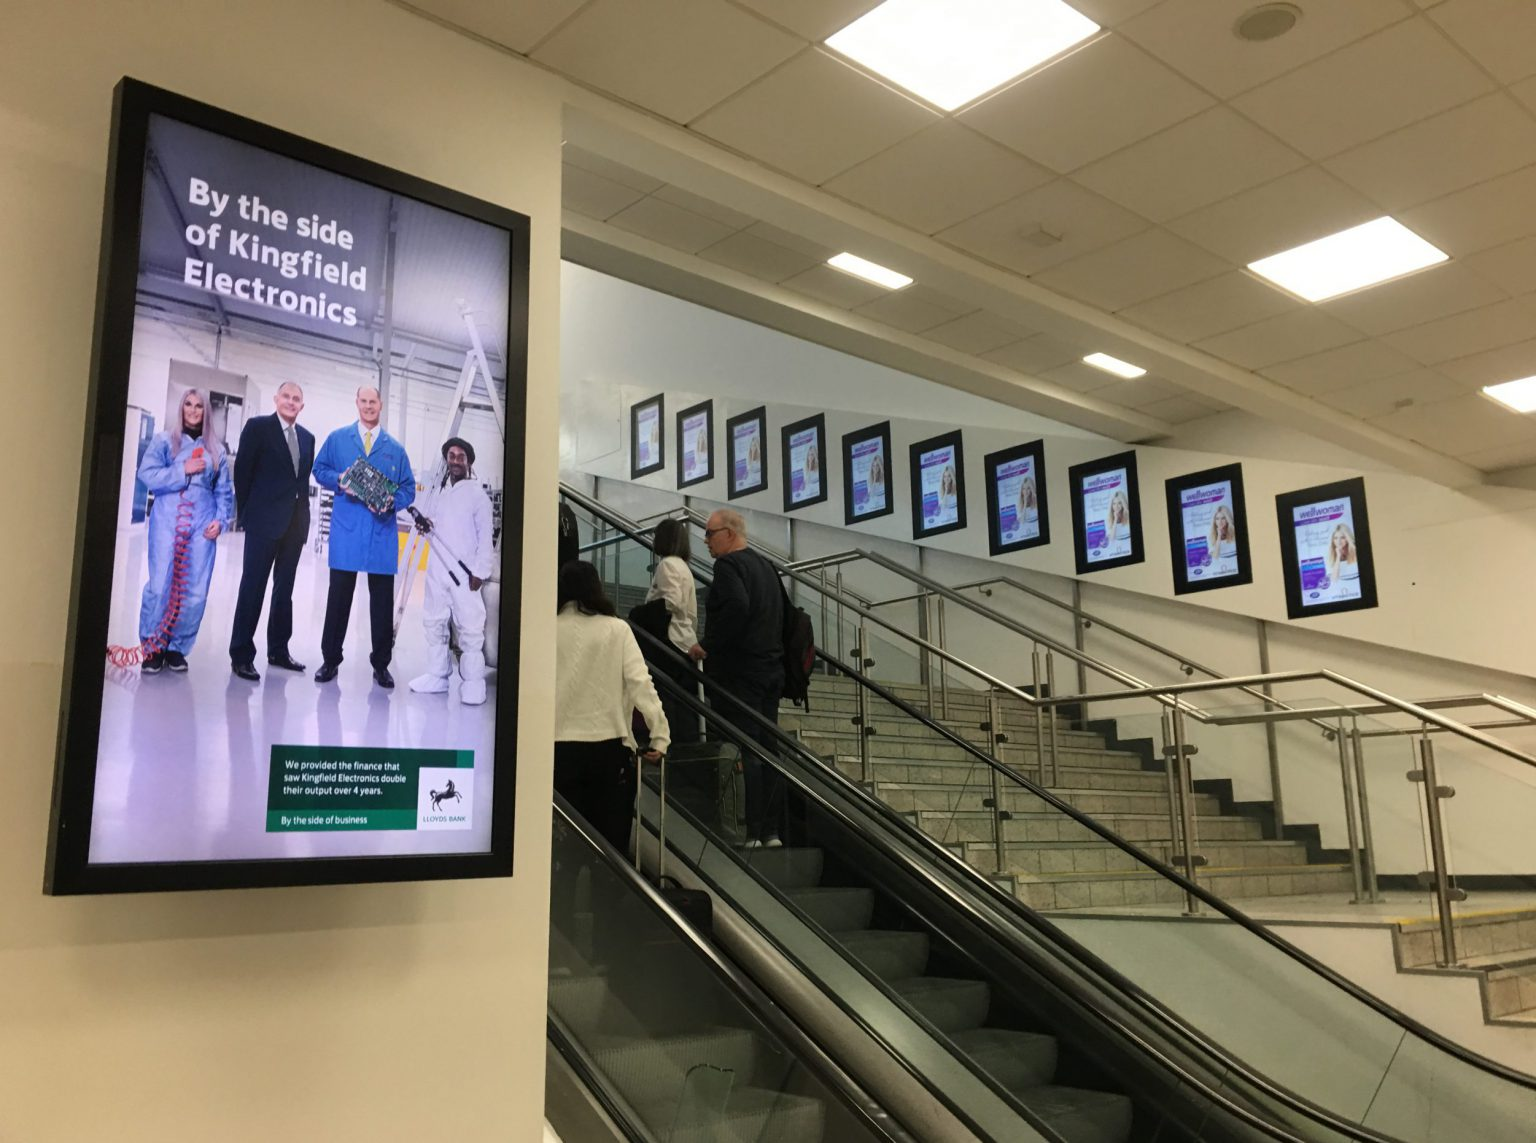 Digital signage content on multiple displays